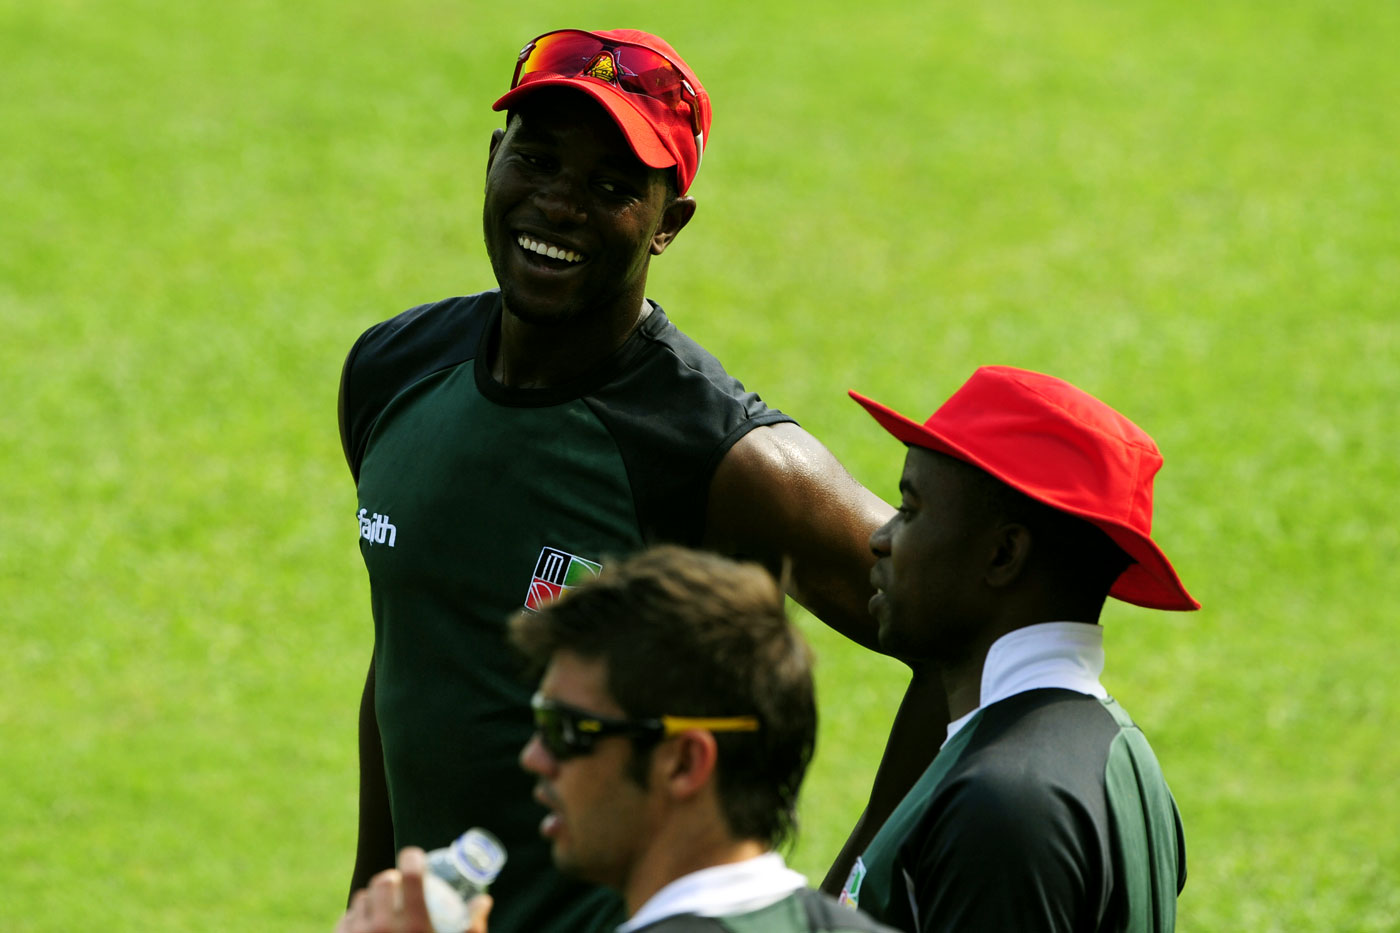 According to the cricketers' association representative Eliah Zvimba, his relationship with the Zimbabwe players strained when he refused to employ the wives of Utseya (right), Vusi Sibanda and Elton Chigumbura (left) at the ZPCA